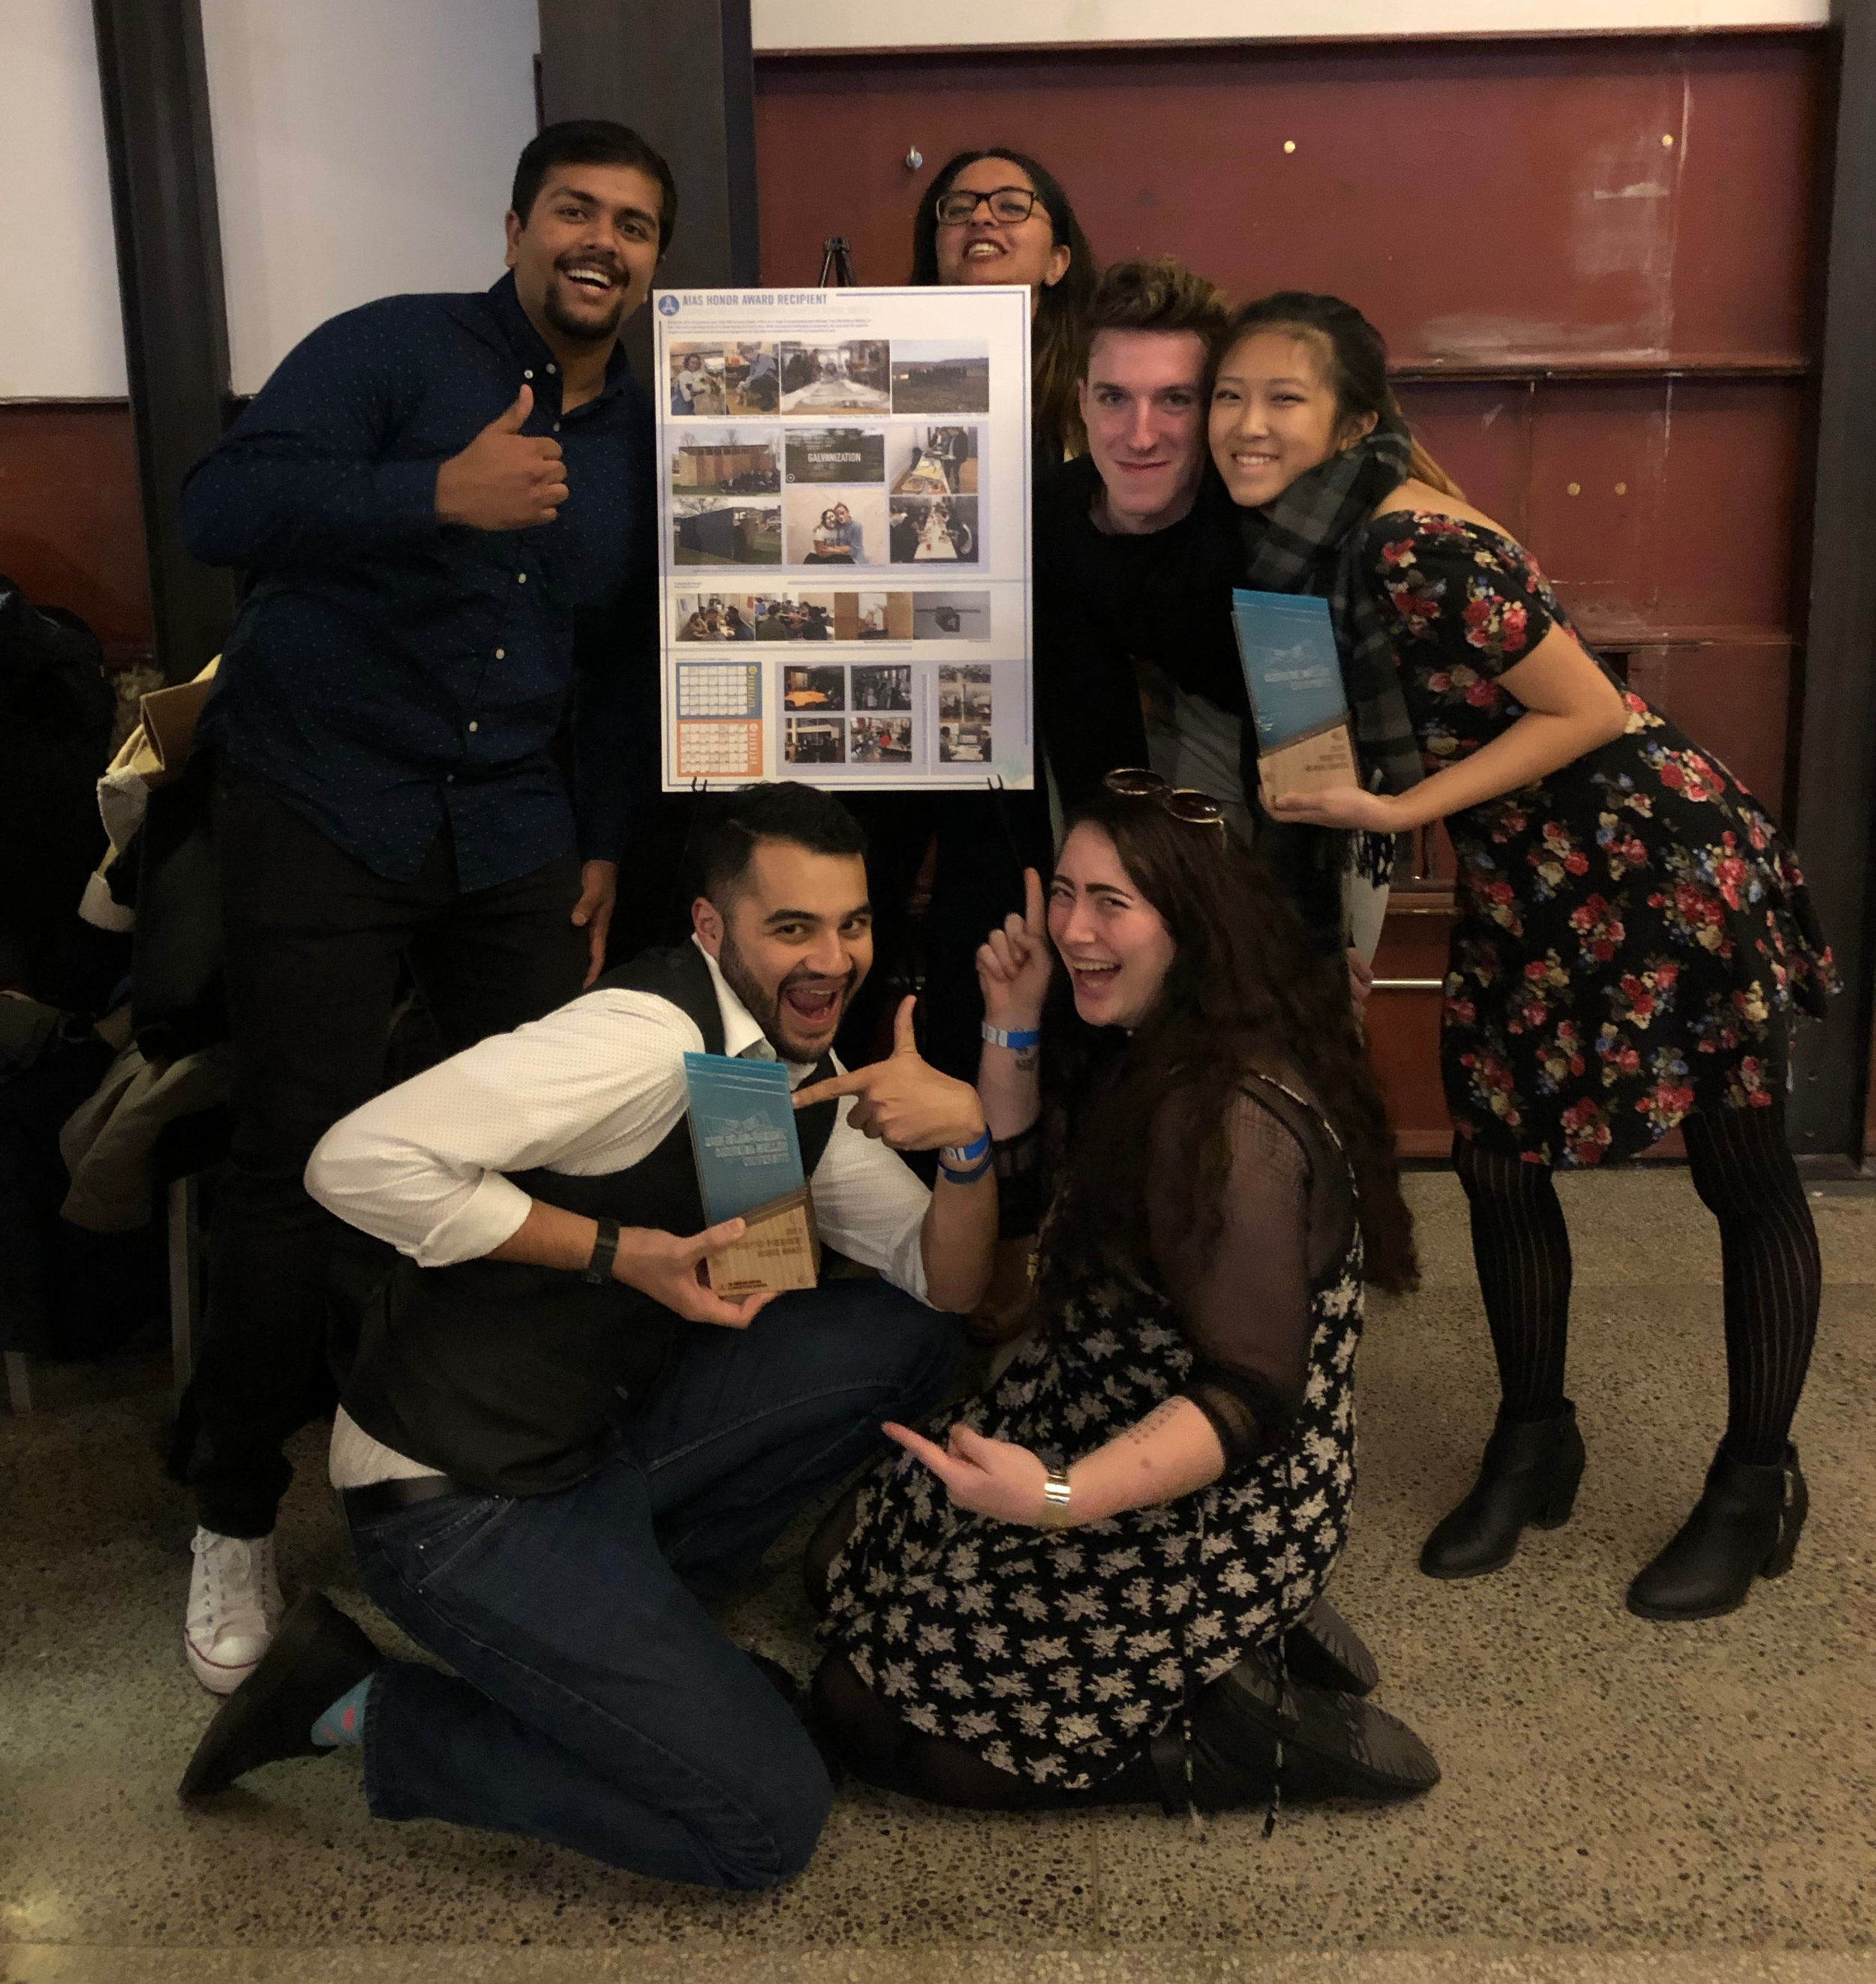 The CMU AIAS chapter won the 2018 Chapter Honor Award from the national organization of AIAS. Chapter representatives accepted the award at Forum 2018 in Seattle.